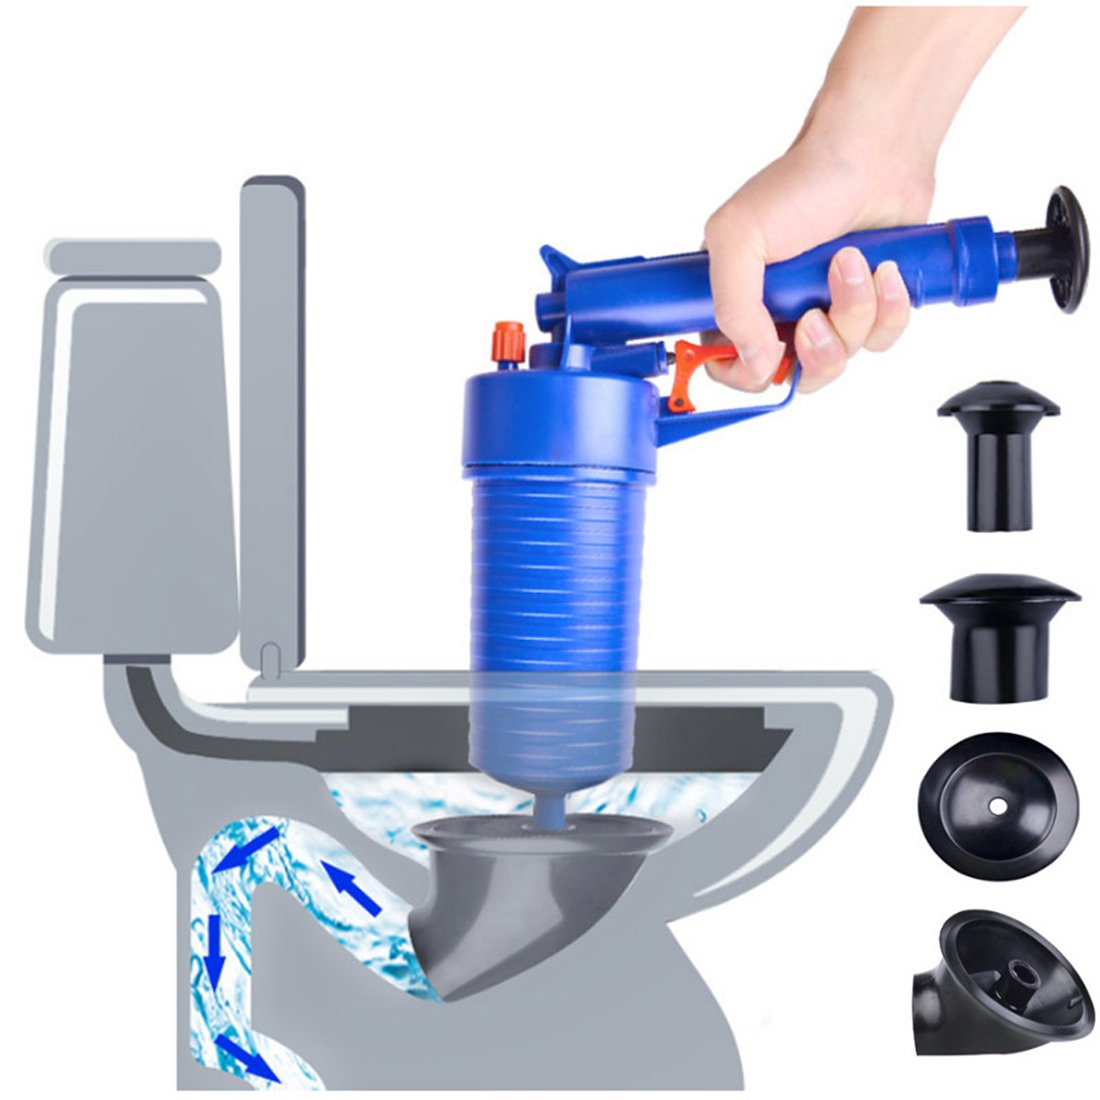 High Pressure Air Power Drain Blaster gun,PERTTY Cleaner Unclogs Toilet Pump Hand Powered Plunger Set for Bath Toilets, Bathroom, Shower, kitchen Clogged Pipe Bathtub(Blue) by PERTTY